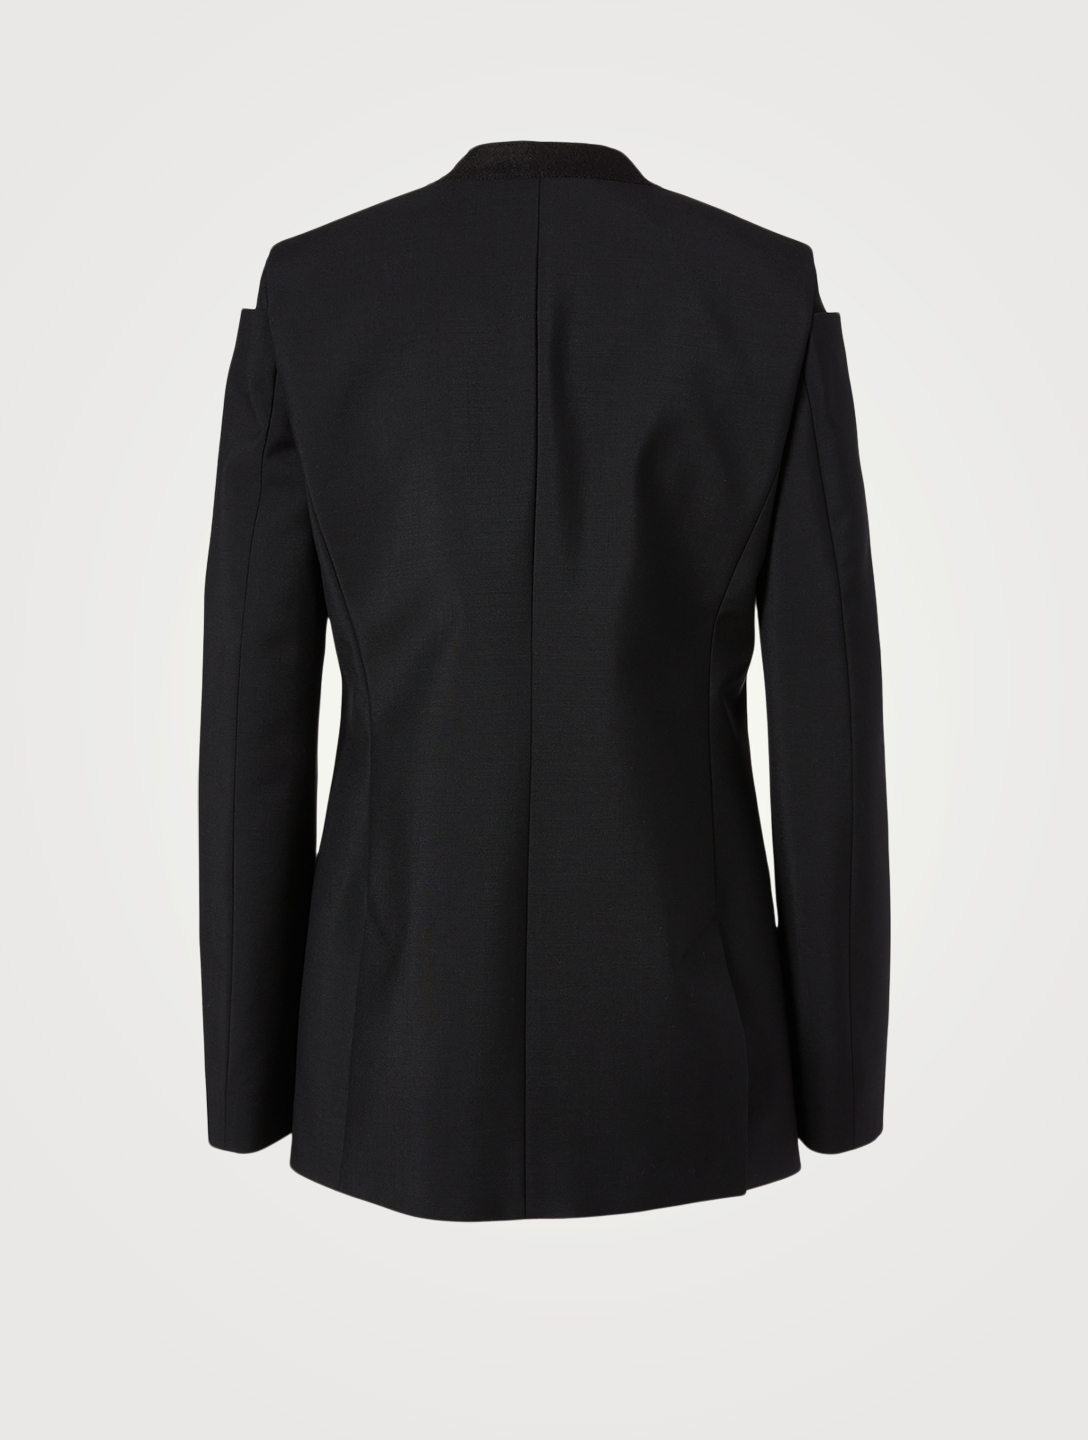 GIVENCHY Wool And Mohair Blazer Women's Black